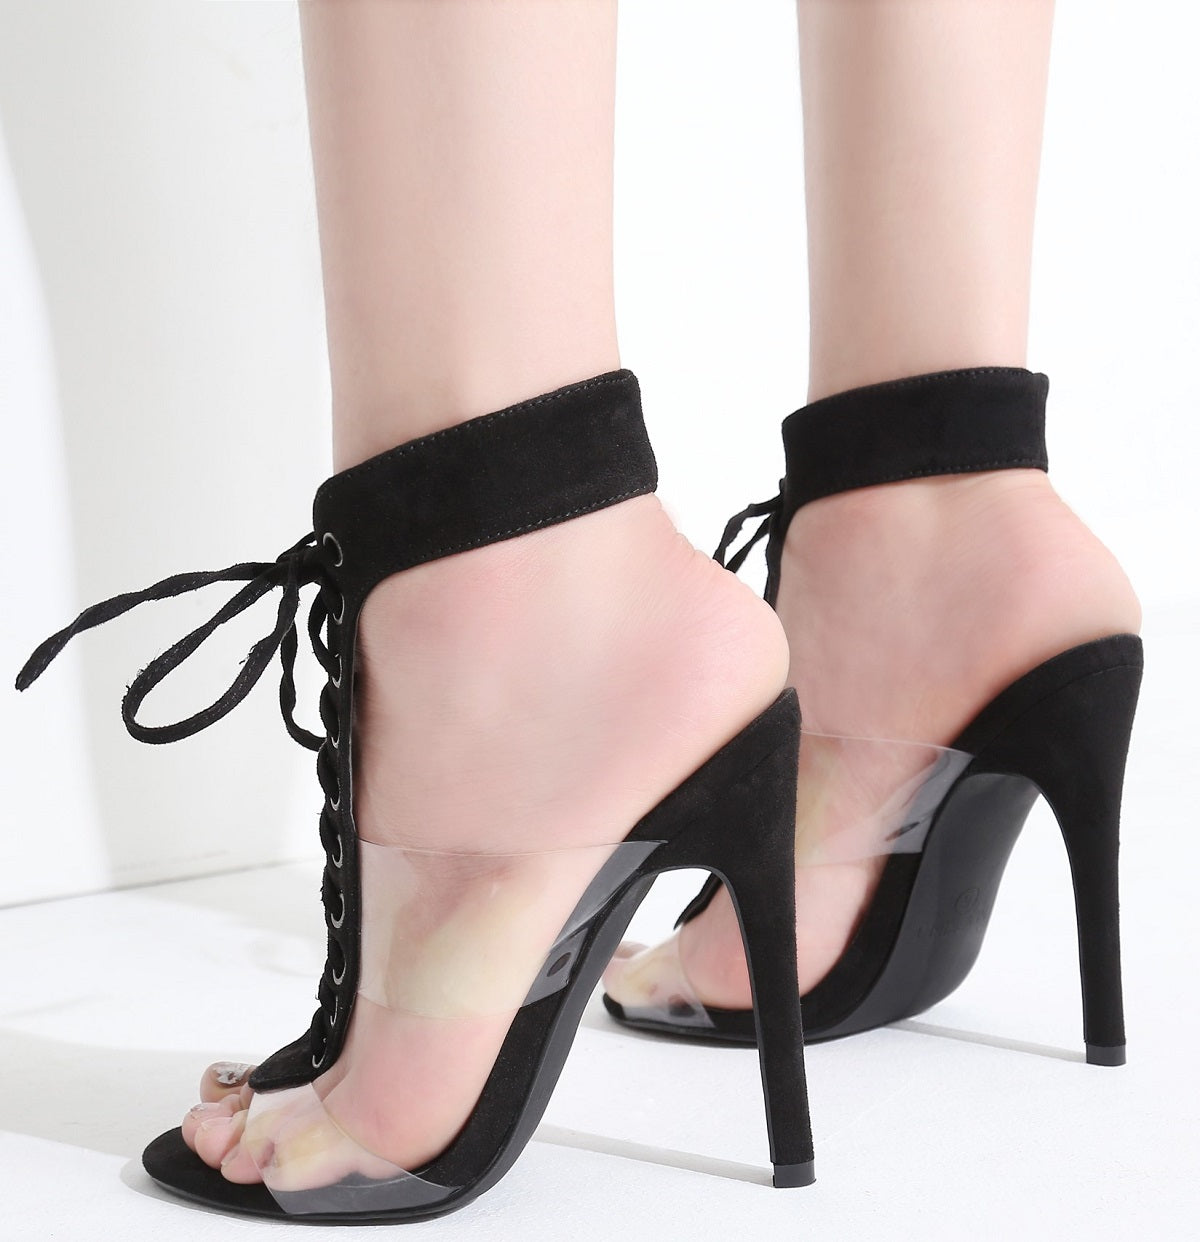 75f9bae279a9 213-77 Lucite Clear PVC Open Toe Lace Up Stiletto High Heel Sandals ...